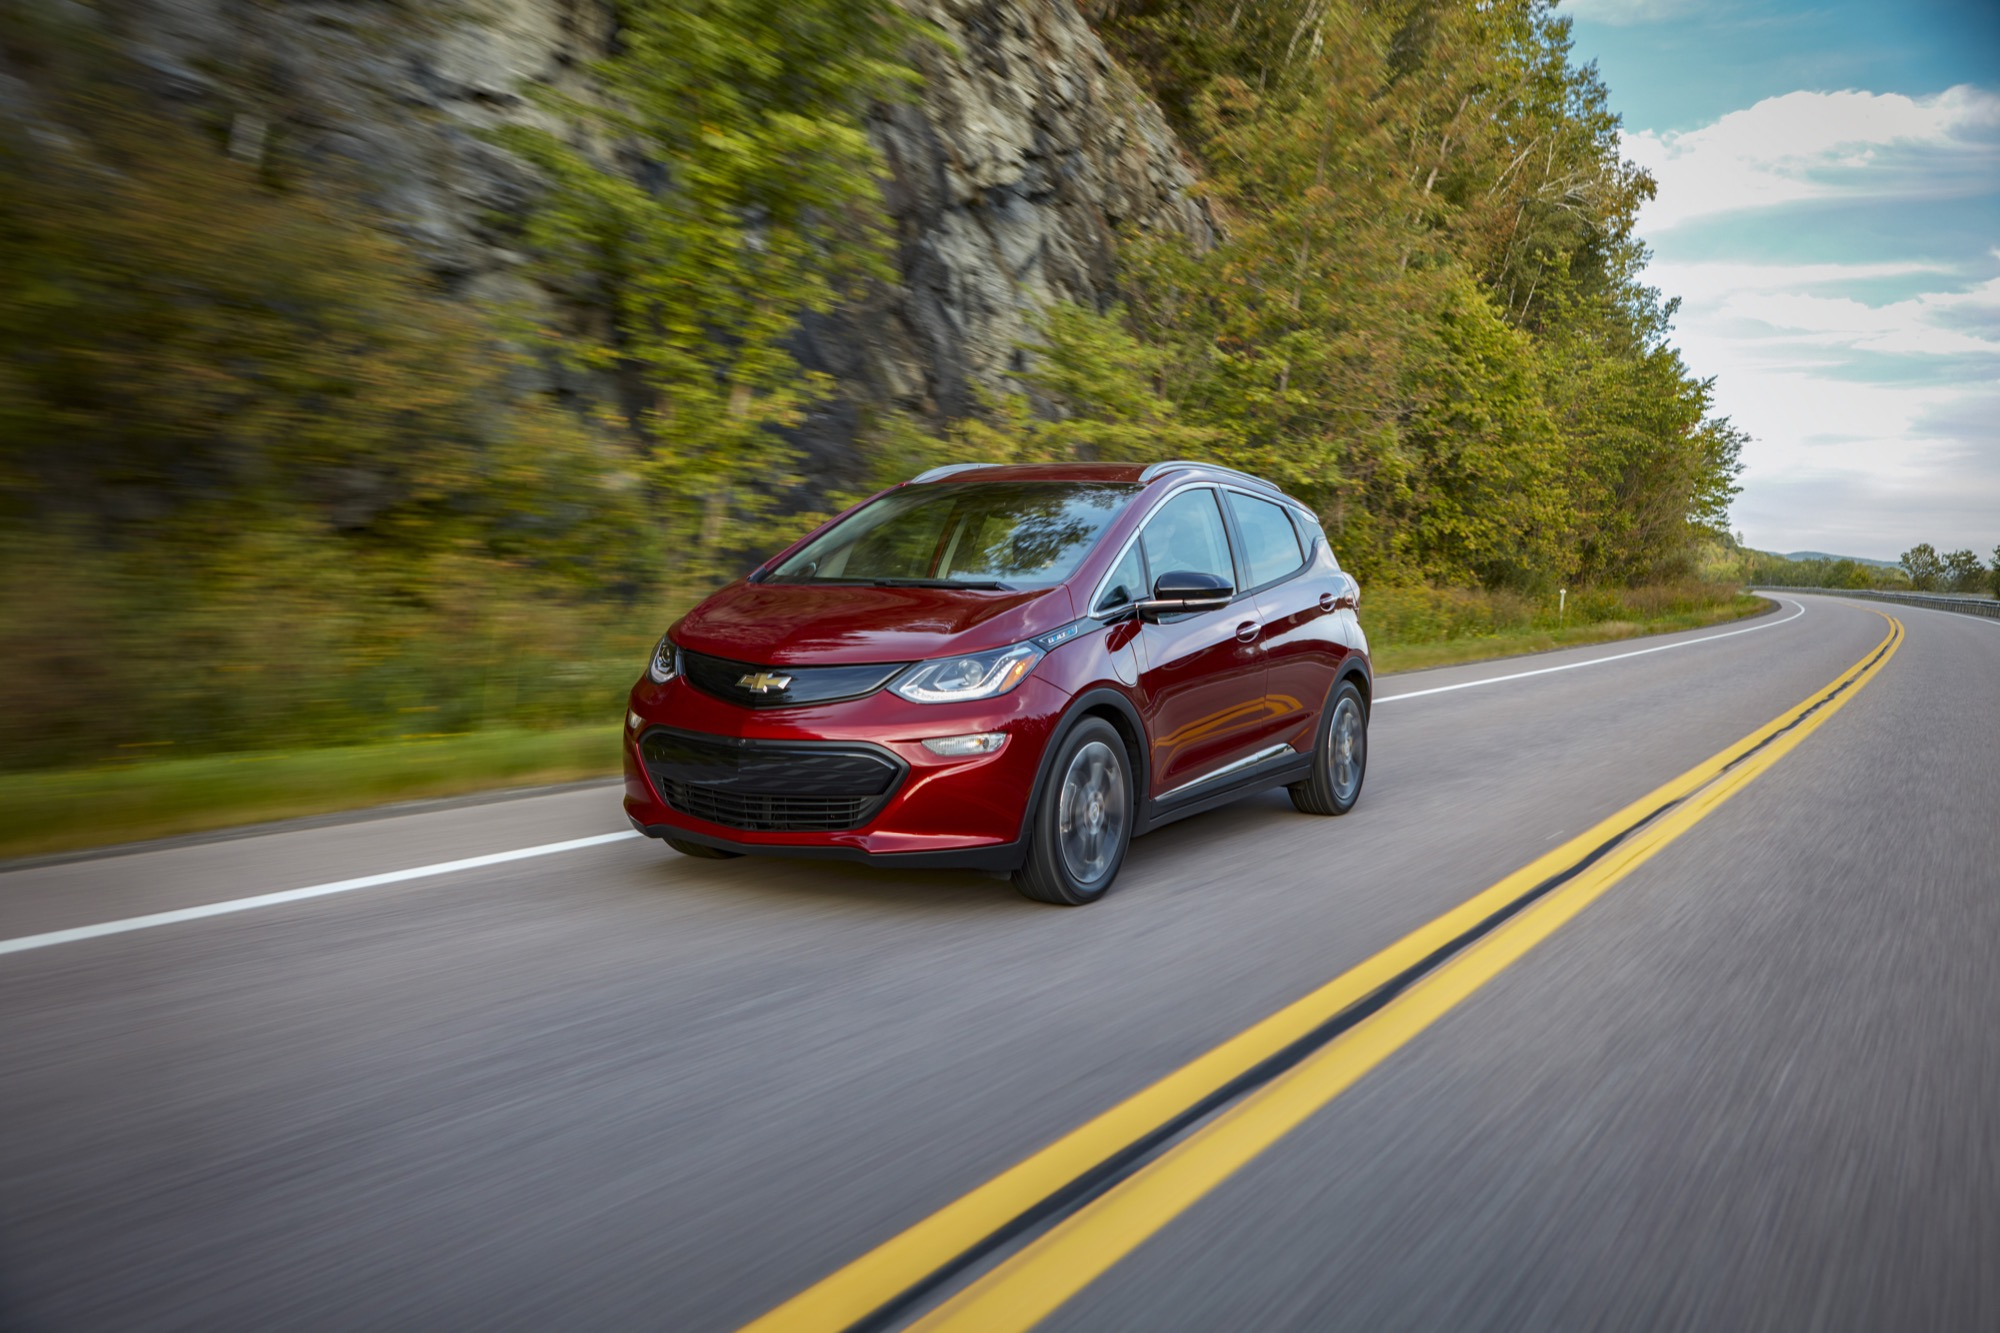 Chevrolet Bolt Ev To Receive Refresh For 2021   Gm Authority 2022 Chevrolet Bolt Ev Charger, Changes, Dimensions